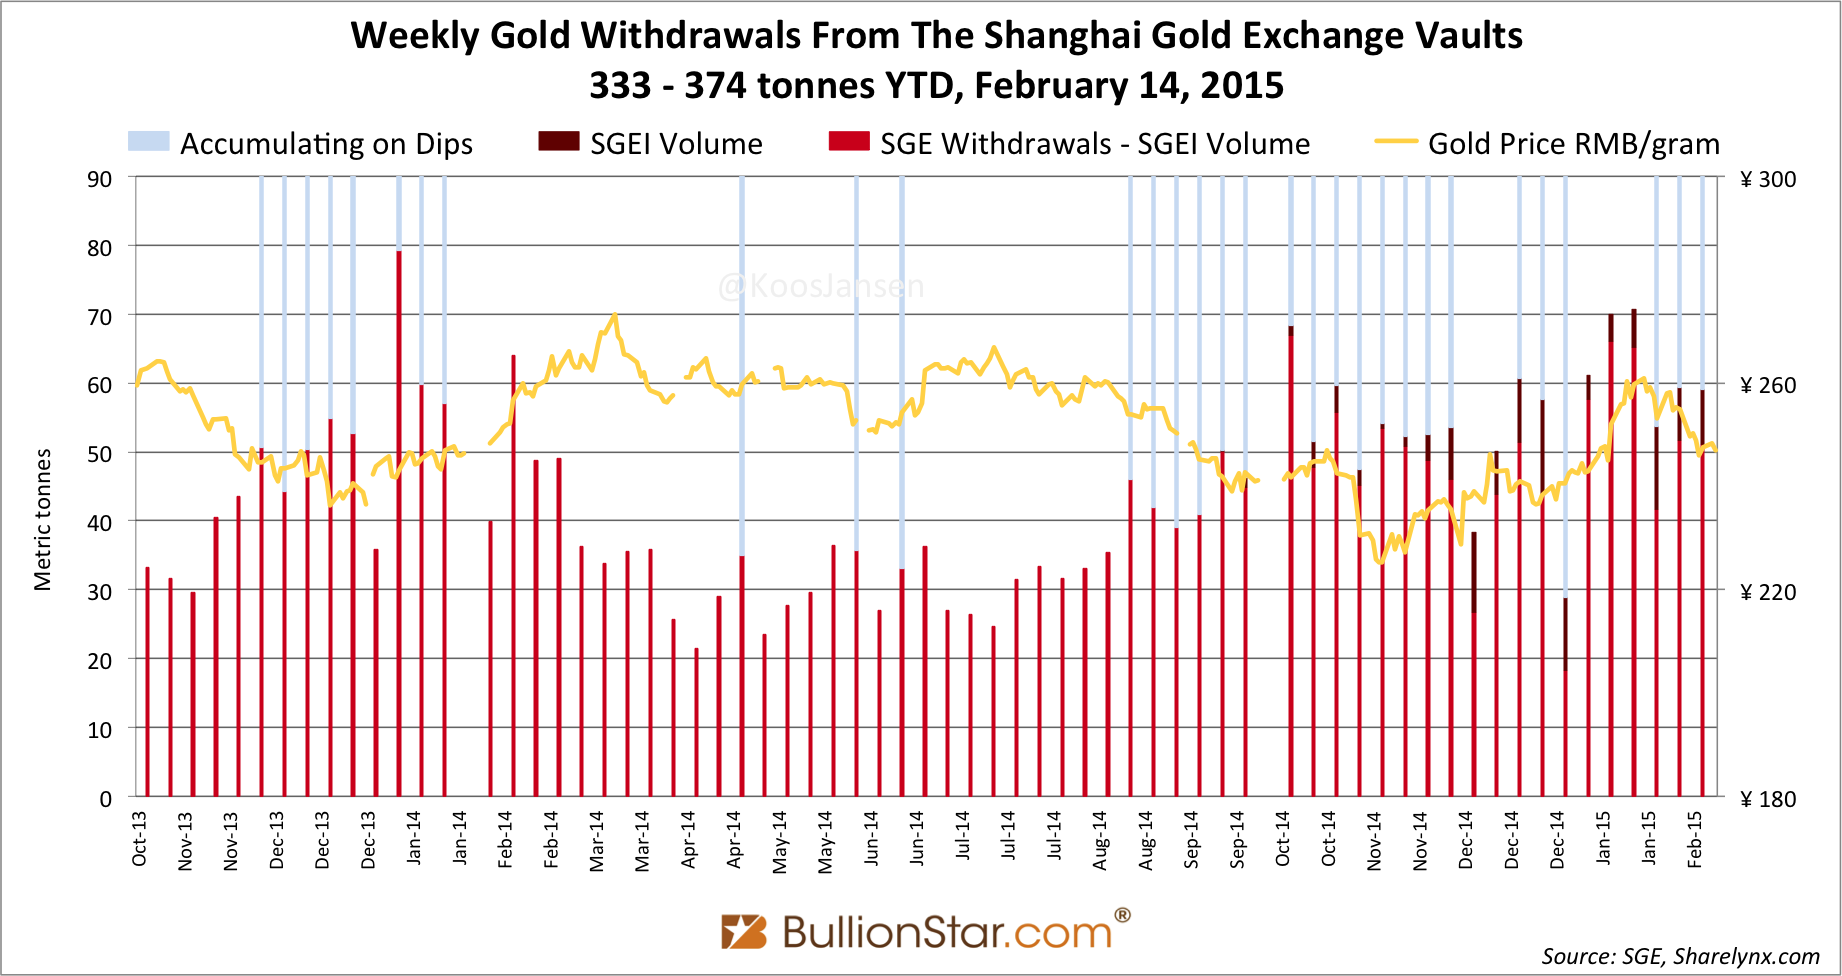 Shanghai Gold Exchange SGE withdrawals delivery only 2014 - 2015 week 6